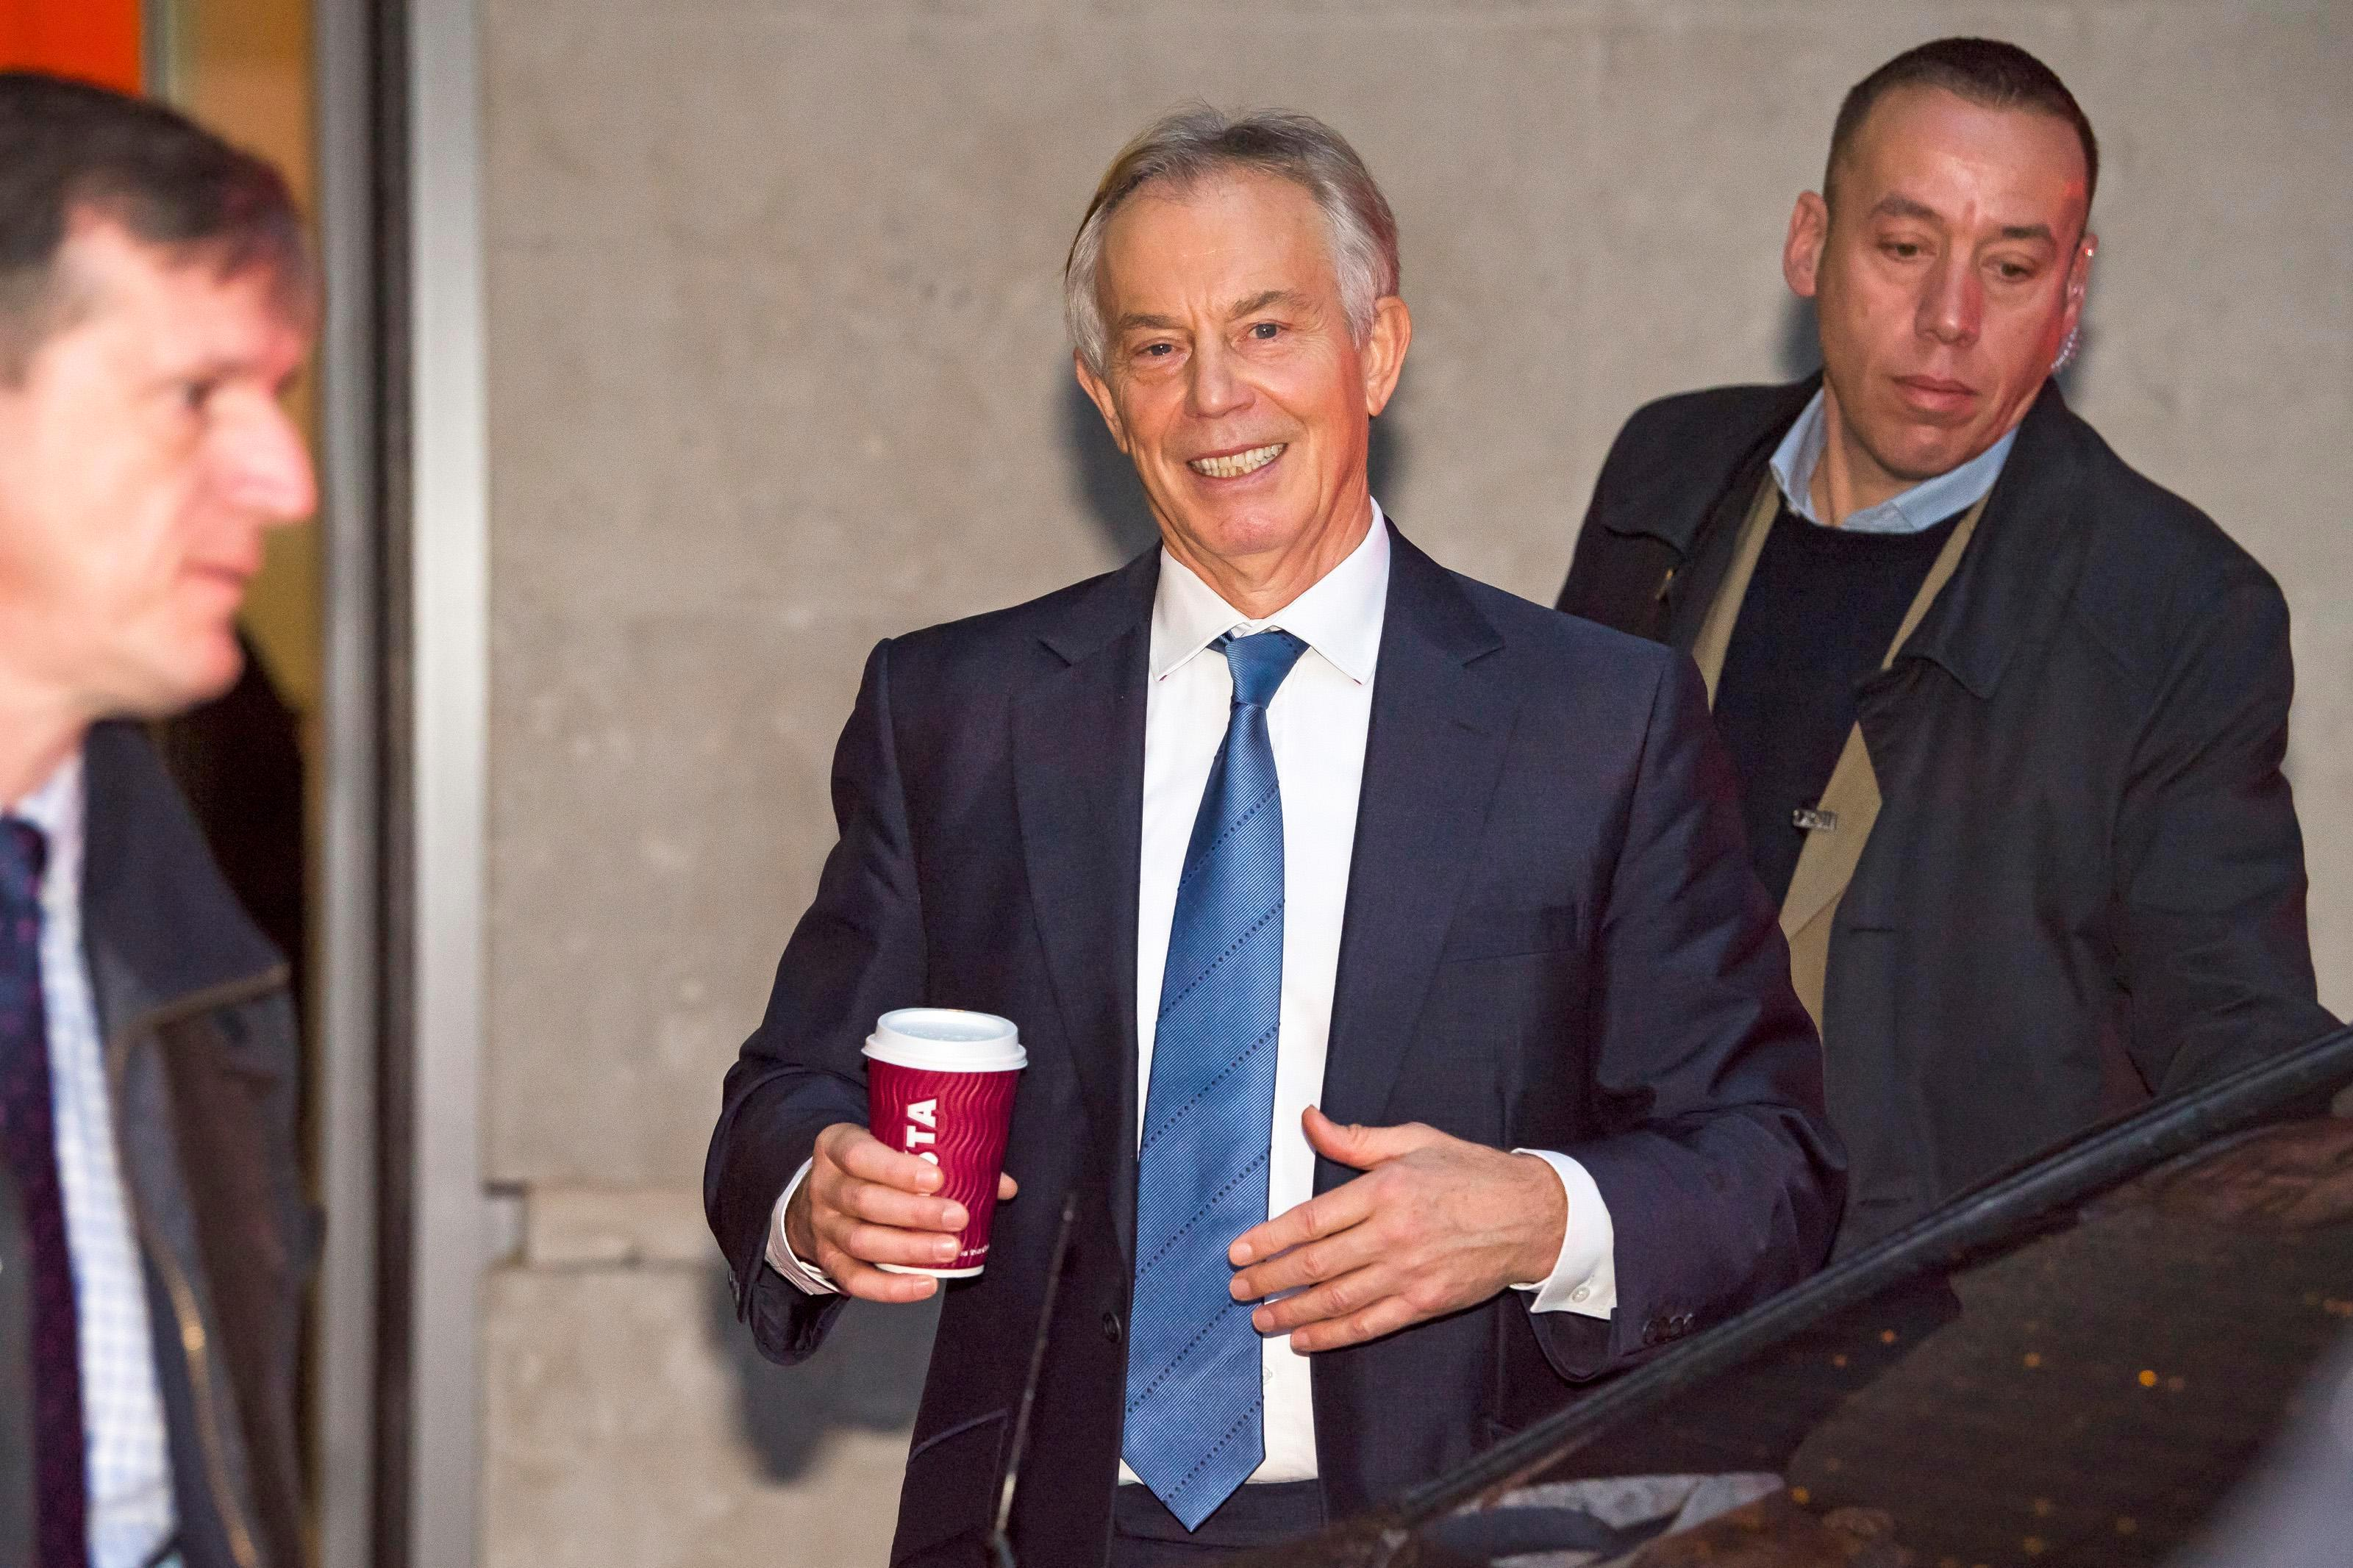 Tony Blair warns EU could collapse if it fails to reform claiming populist uprisings like Brexit will spread to other countries